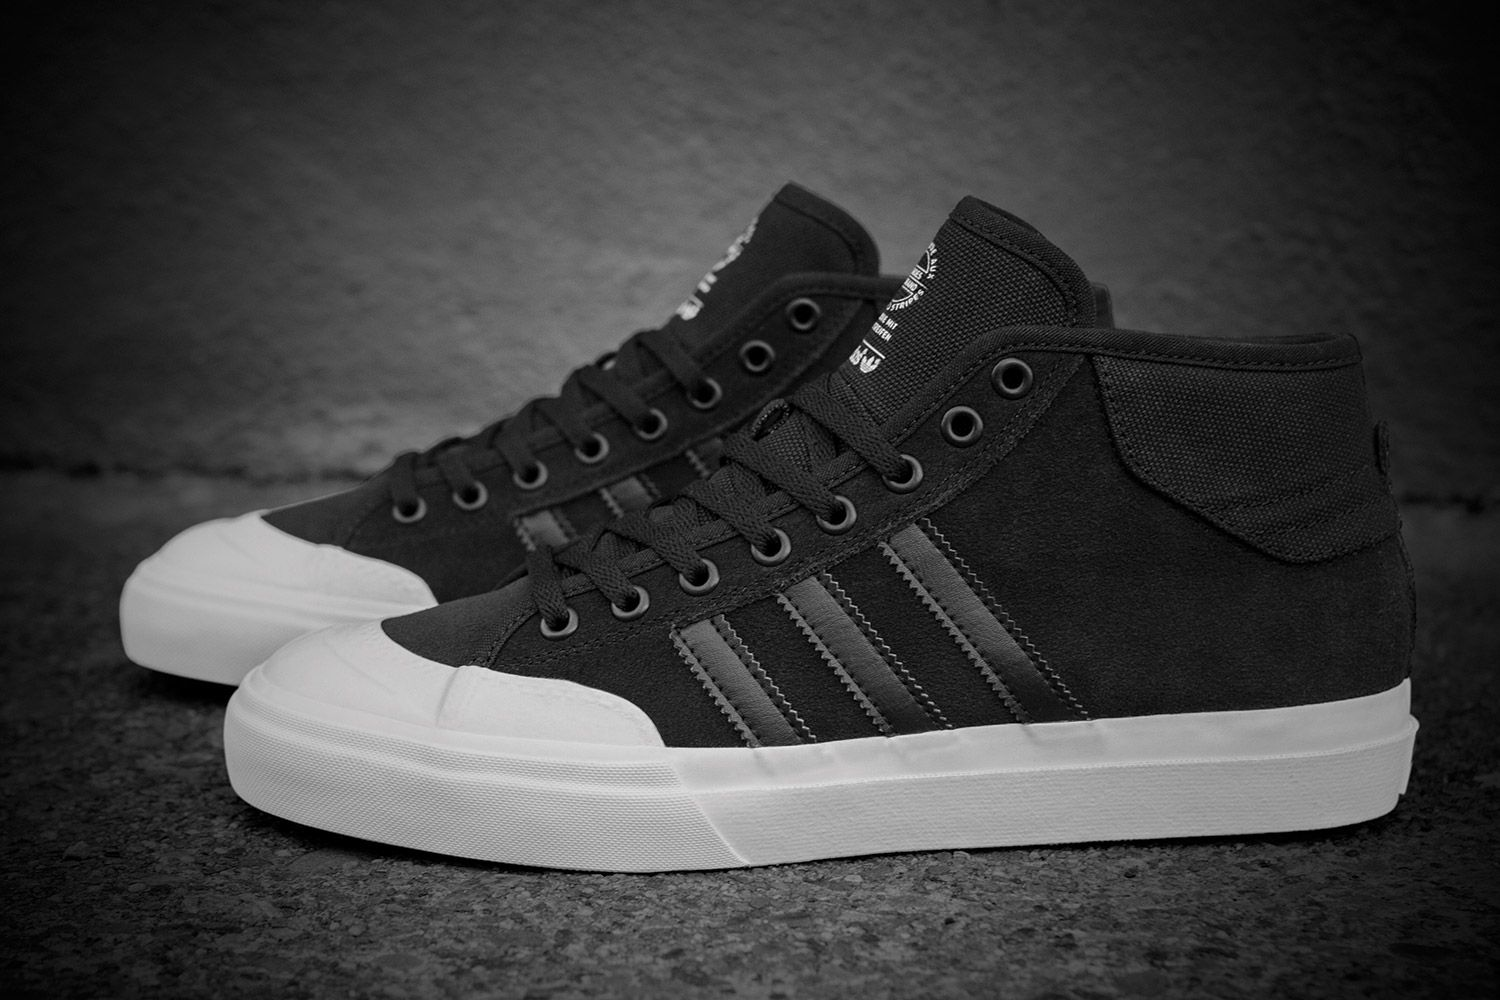 timeless design 31d44 5e41c adidas Skateboarding have released their all-new Matchcourt sneaker. The  model draws inspiration from the classic Nizza silhouette and boasts the  look of a ...